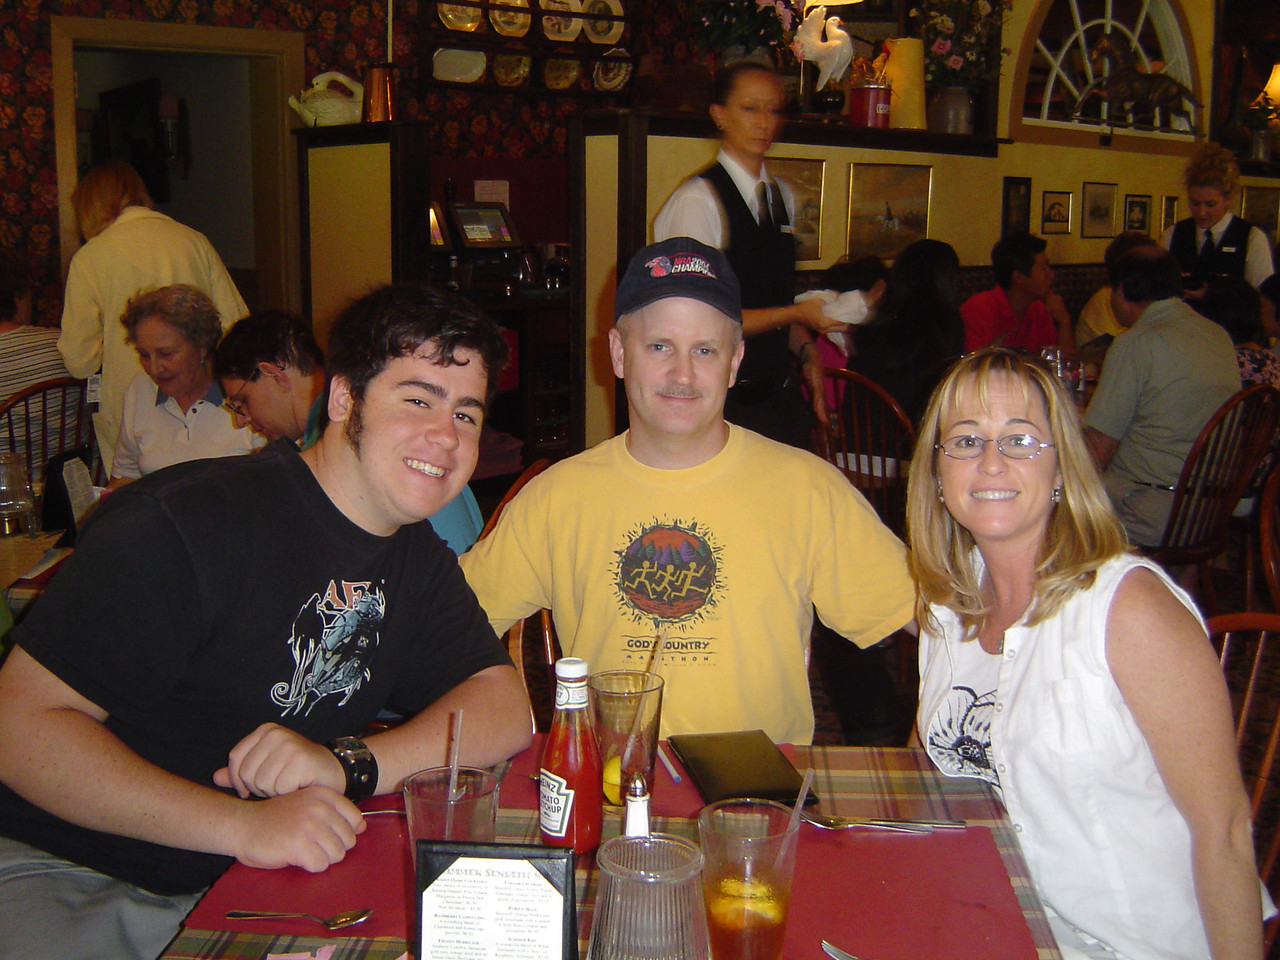 Eating out in Lambertville, New Jersey - August 2005